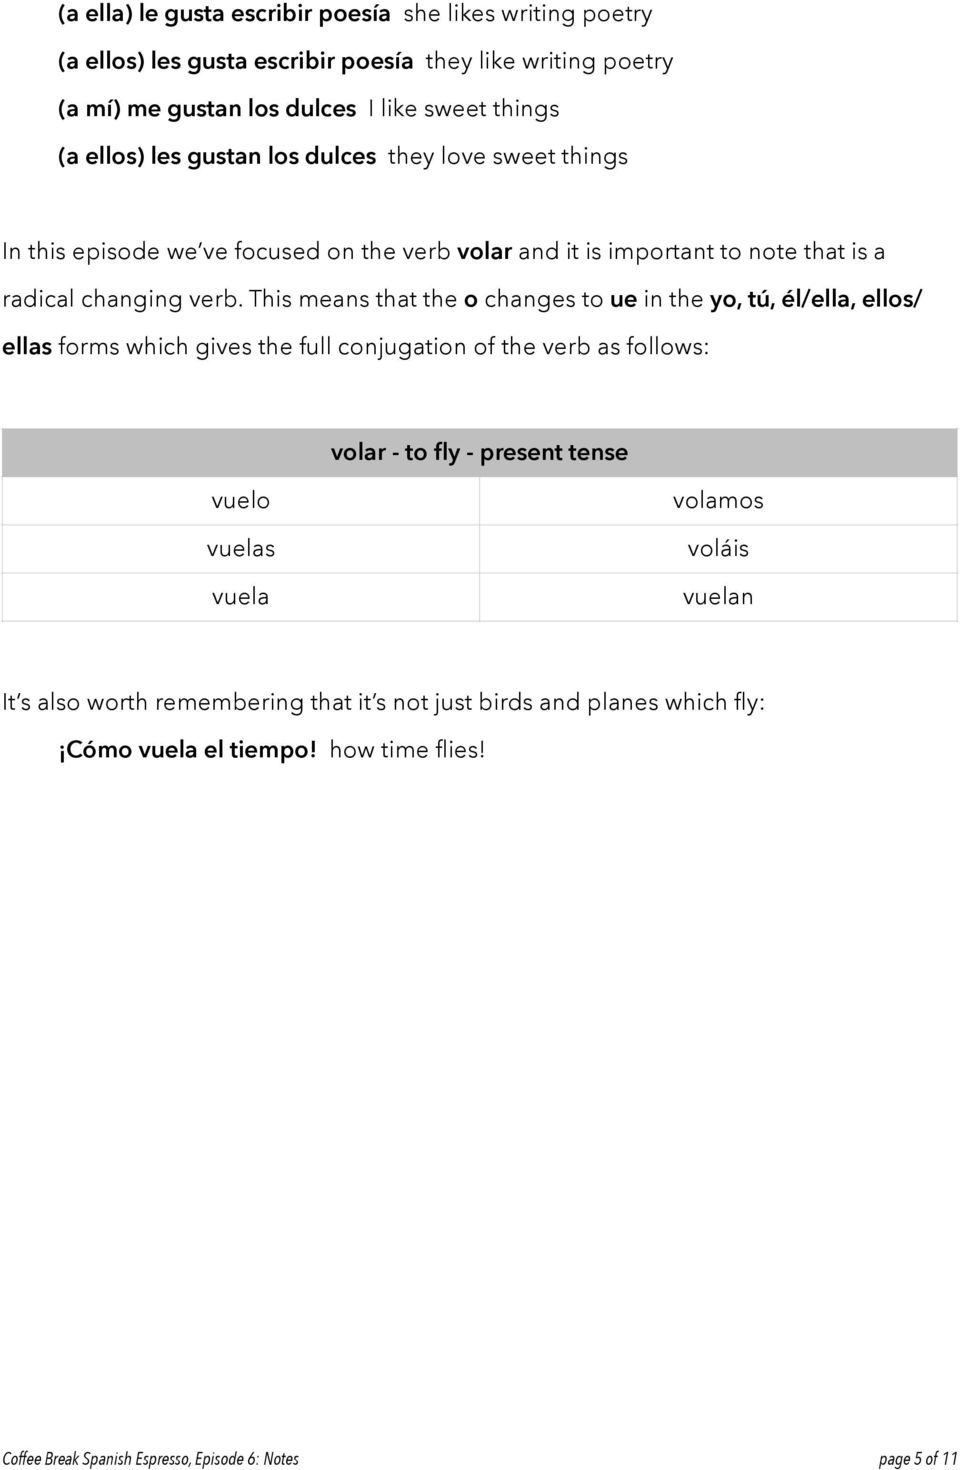 This means that the o changes to ue in the yo, tú, él/ella, ellos/ ellas forms which gives the full conjugation of the verb as follows: volar - to fly - present tense vuelo